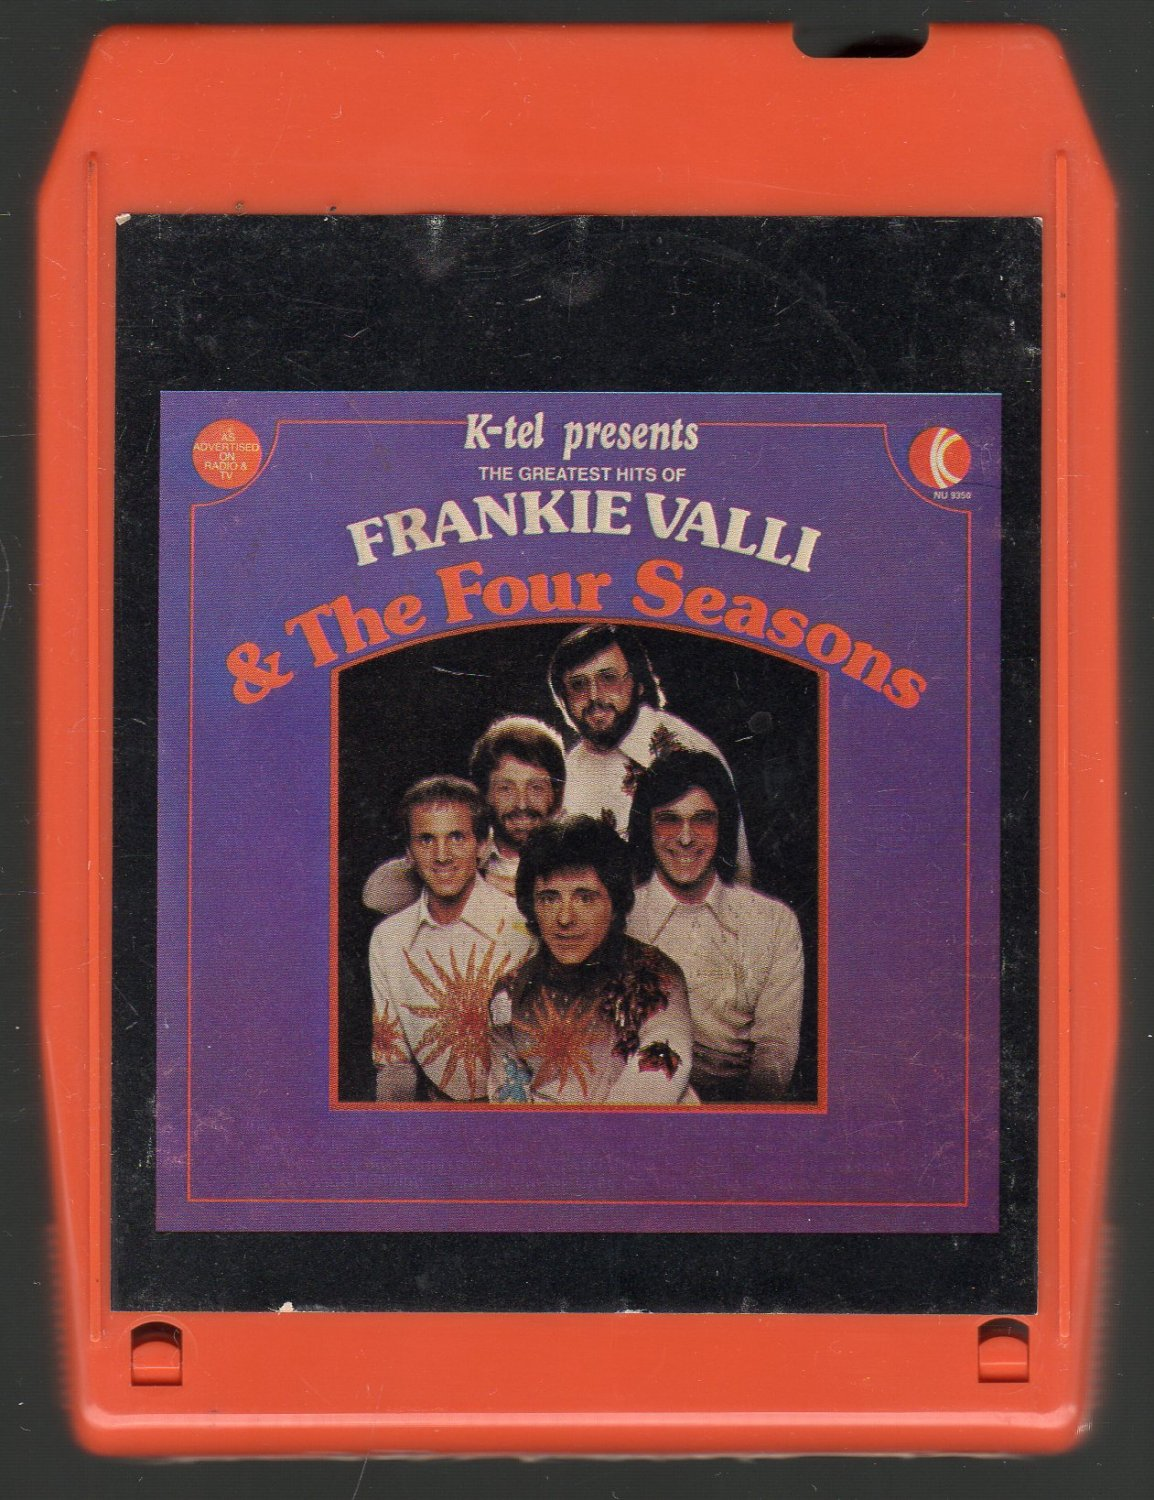 Frankie Valli & The Four Seasons - The Greatest Hits Part 1 K-TEL A52 8-track tape